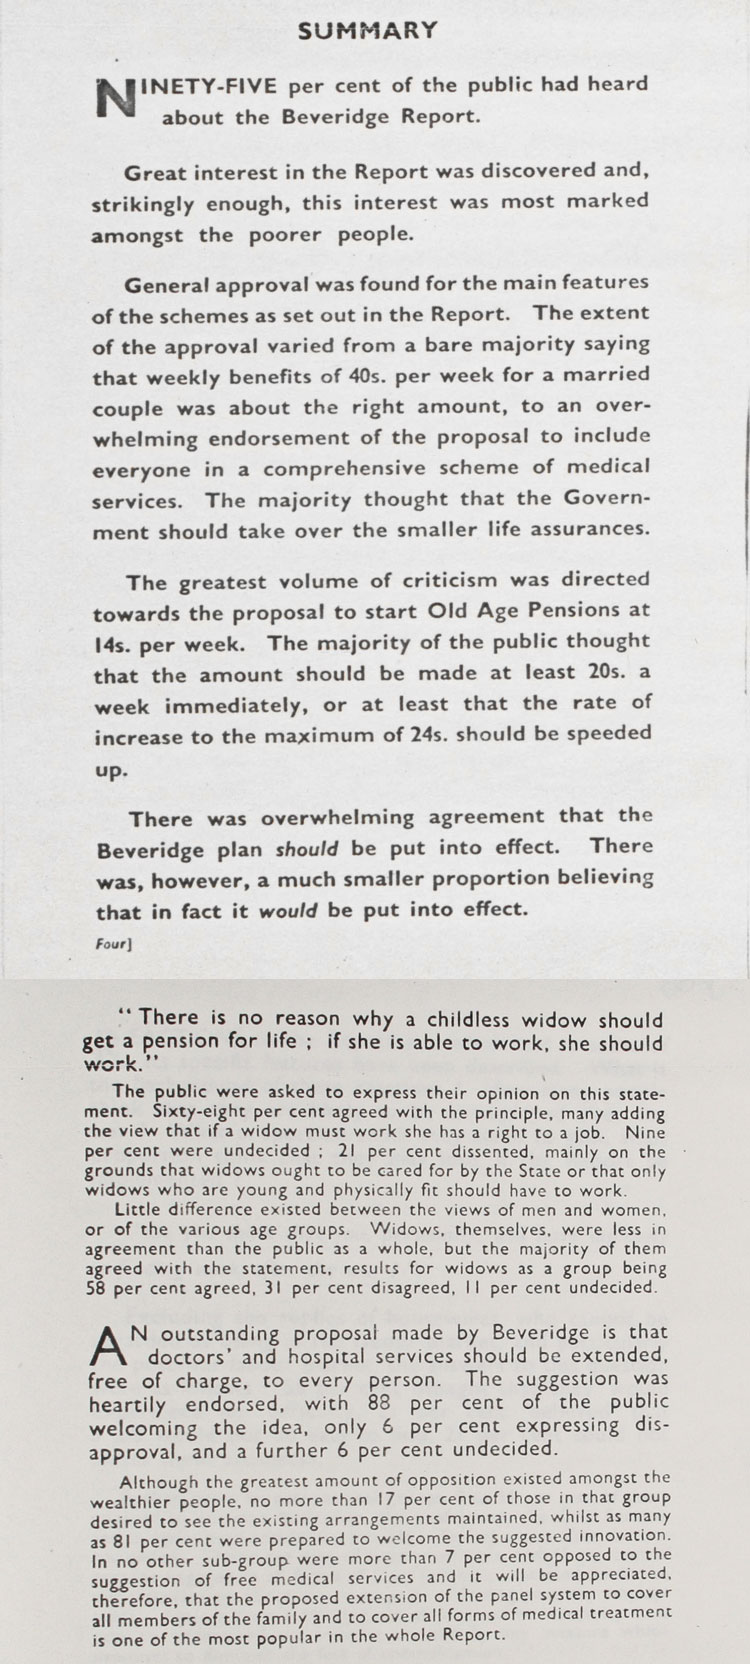 Results of a public opinion survey on the Beveridge Report. To get the scheme accepted by the Treasury and reduce costs, pensions were limited, 1942-3 (PREM 4/89/2)